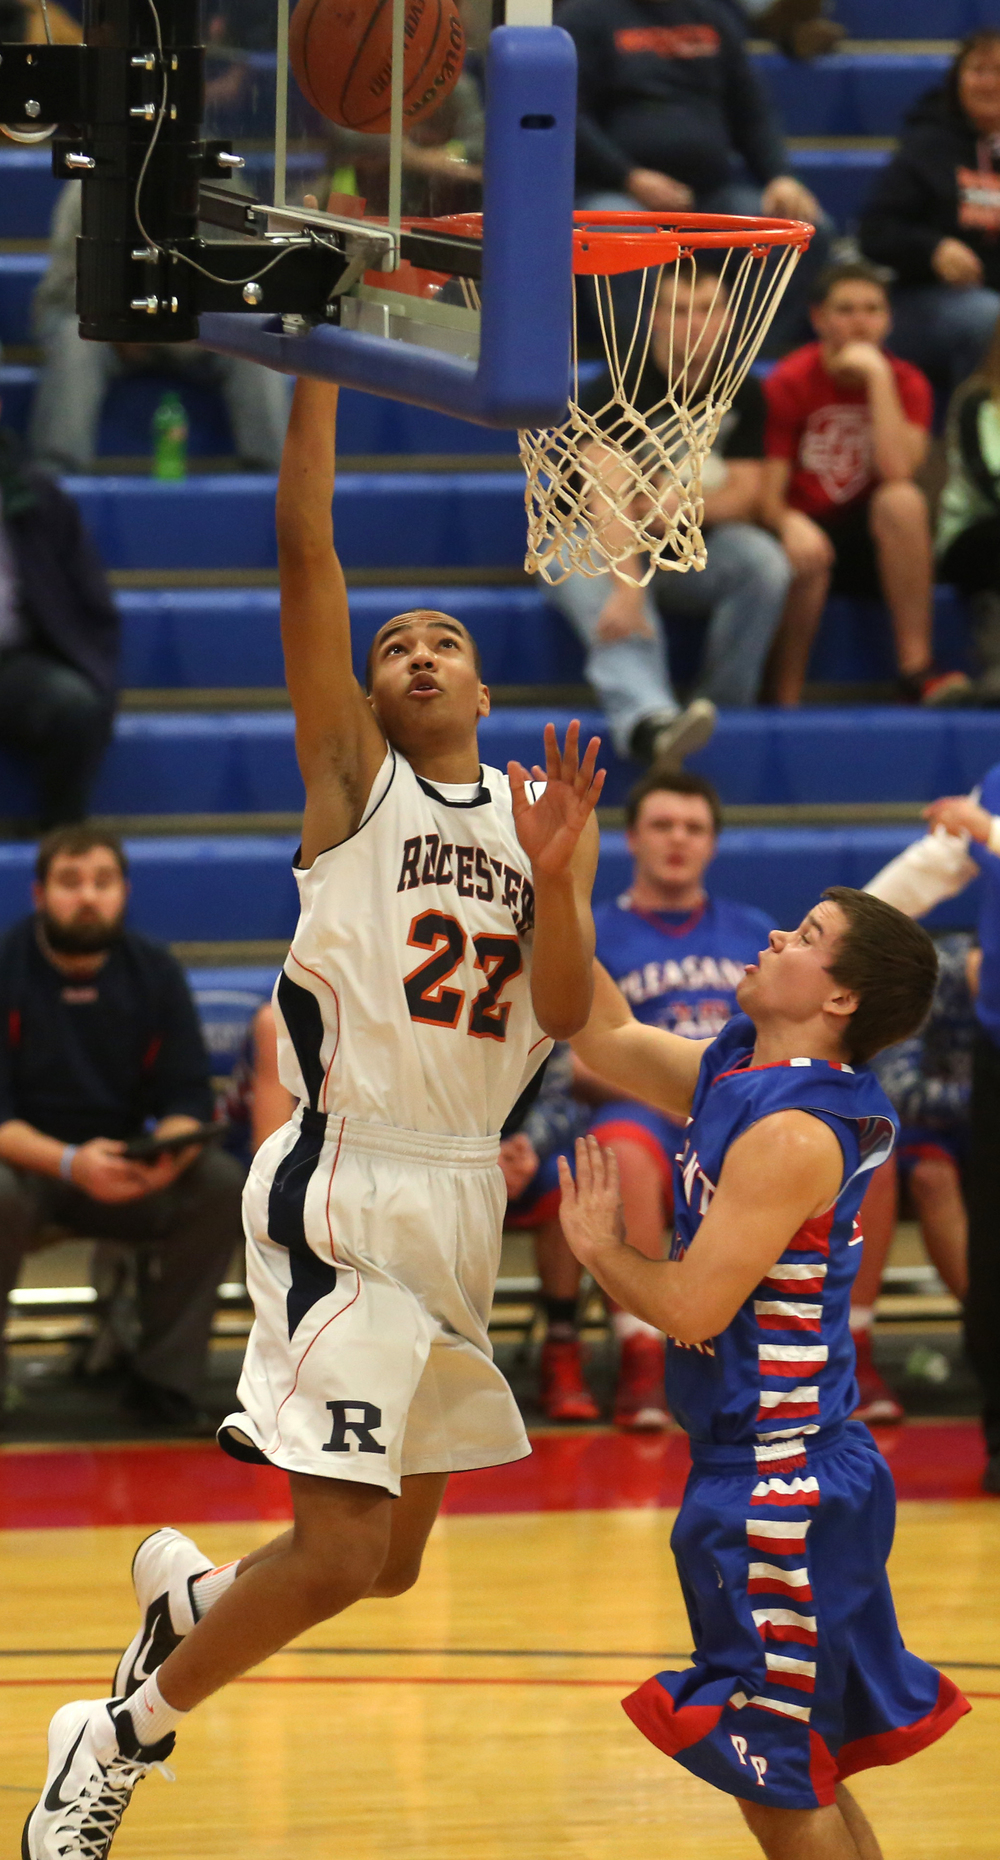 Rochester player Collin Stallworth hits a layup for two points while Plains player Jacob Cronister defends. Rochester defeated Pleasant Plains 61-37 in a semifinal game at the Sangamon County Basketball Tournament at Cass gymnasium at Lincoln Land Community College in Springfield on Wednesday evening, Jan. 14, 2015. David Spencer/The State Journal-Register